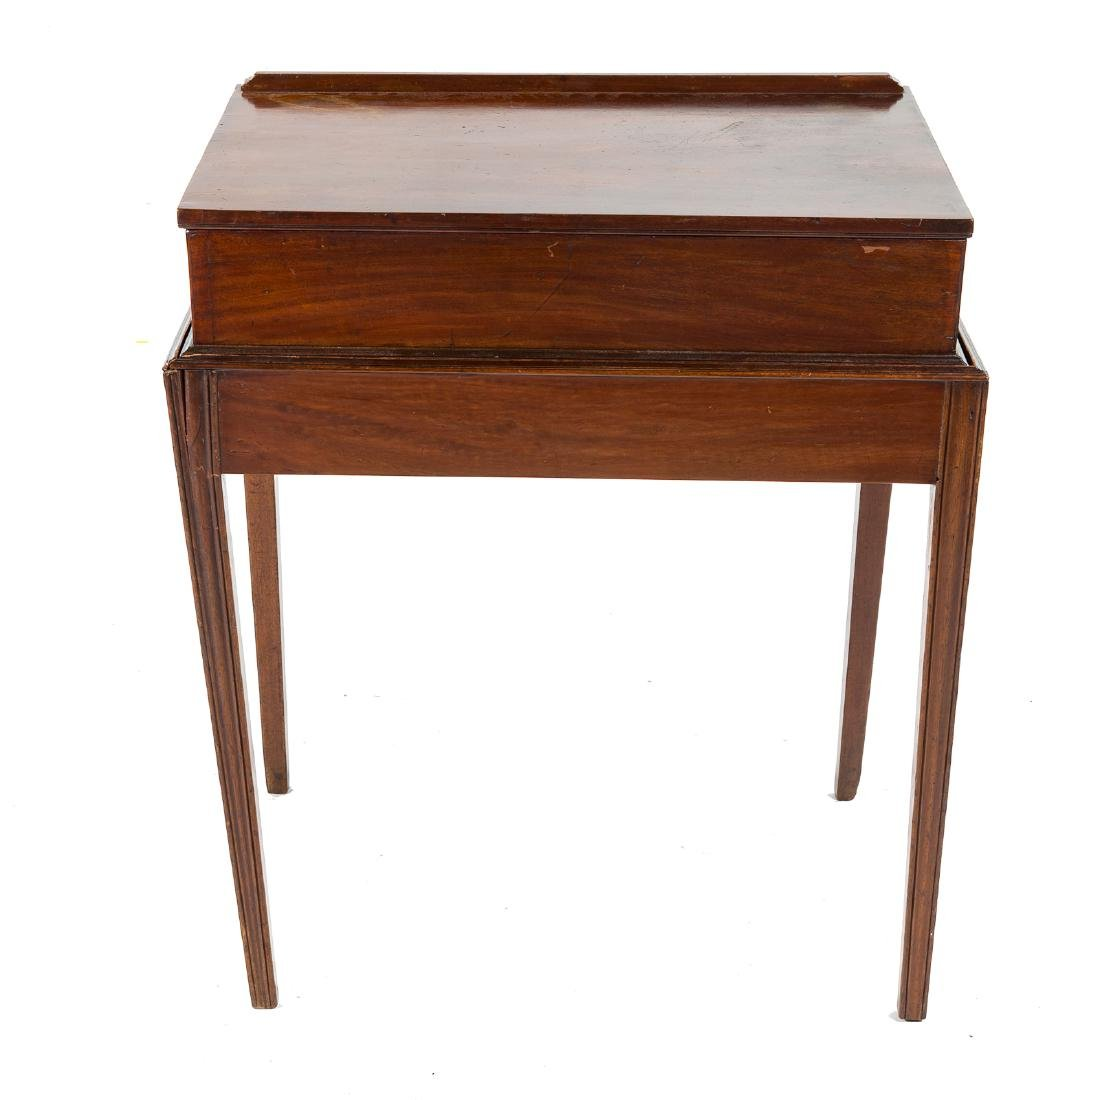 George III style mahogany architect's desk - 4